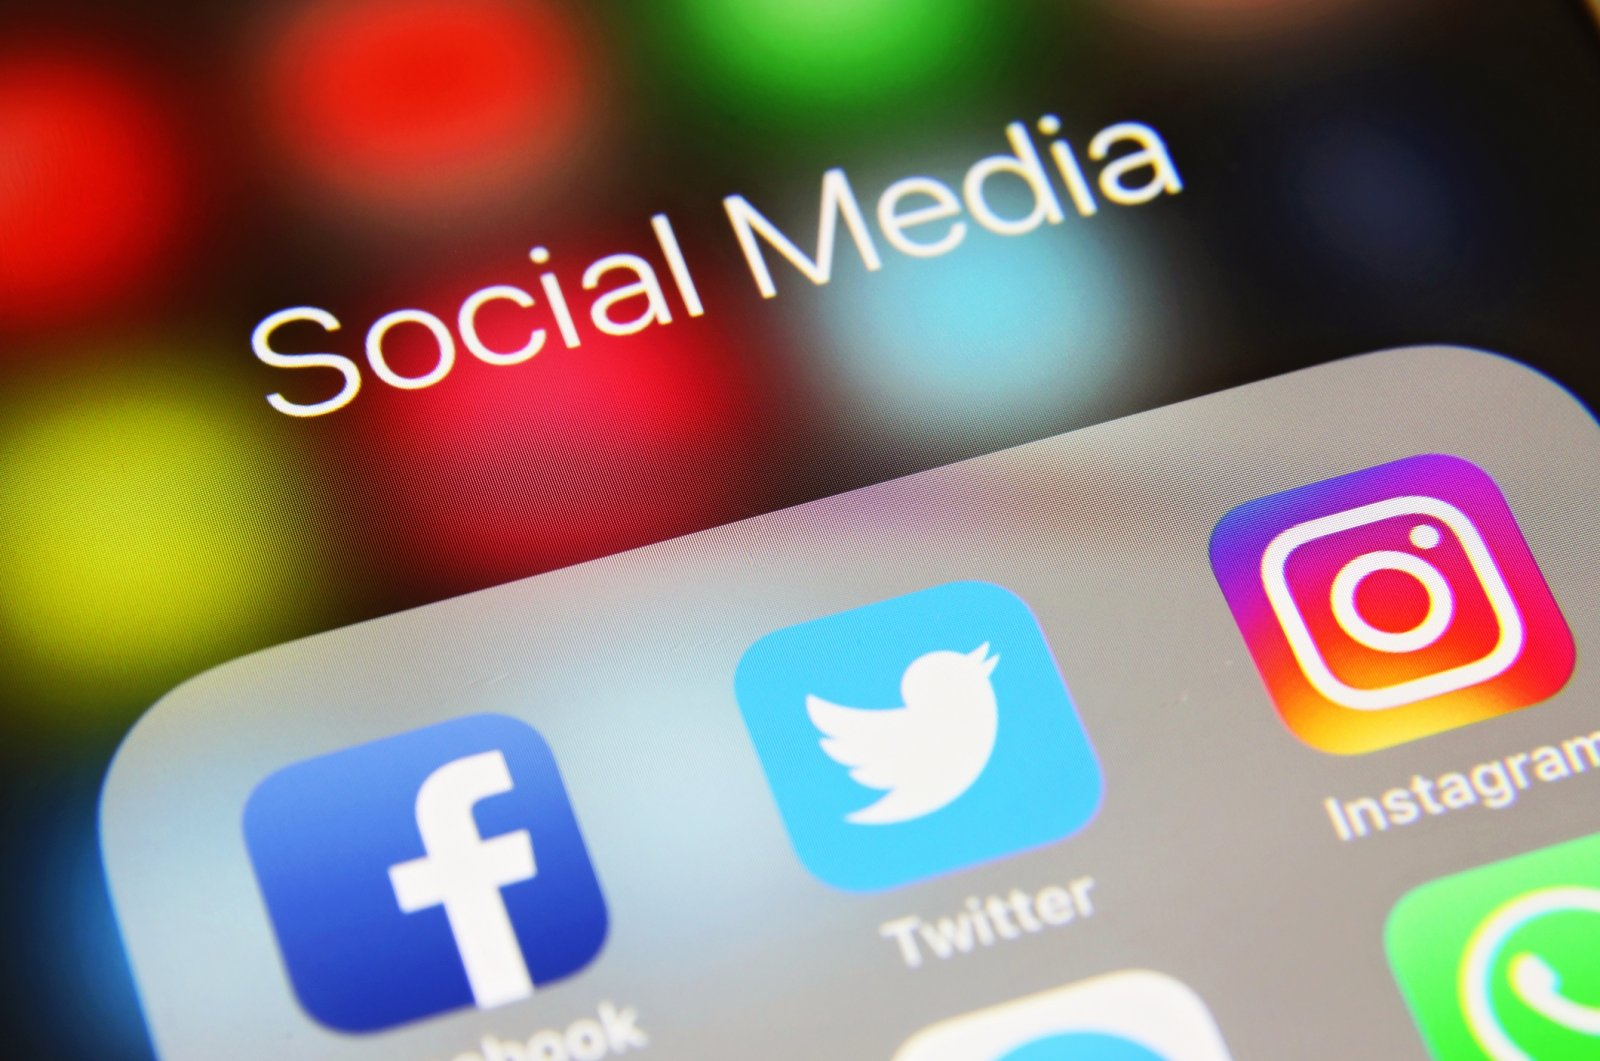 Icons of social media applications such as Facebook, Twitter and Instagram are seen on a screen of a mobile phone, London, U.K., June 2, 2019. (iStock Photo)